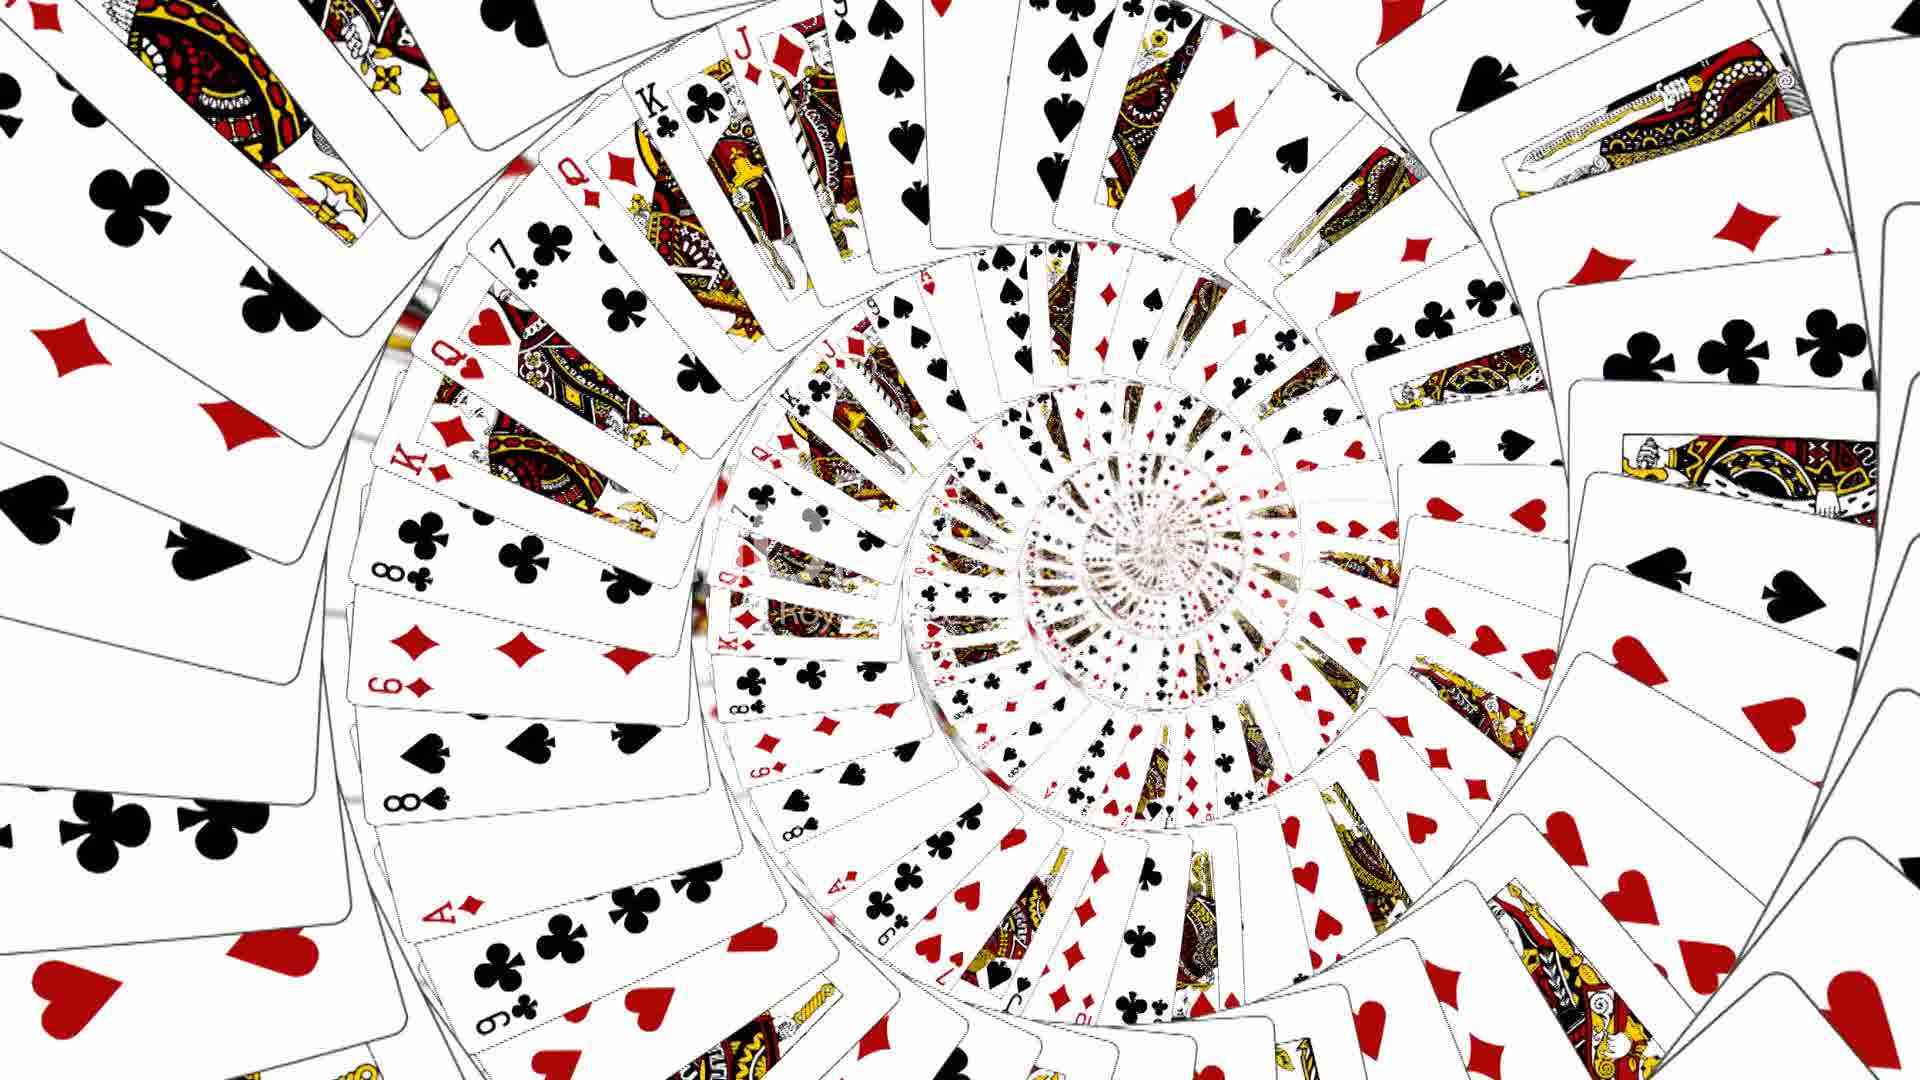 2288x1712px 913479 Playing Cards 257444 KB 3007 1920x1080